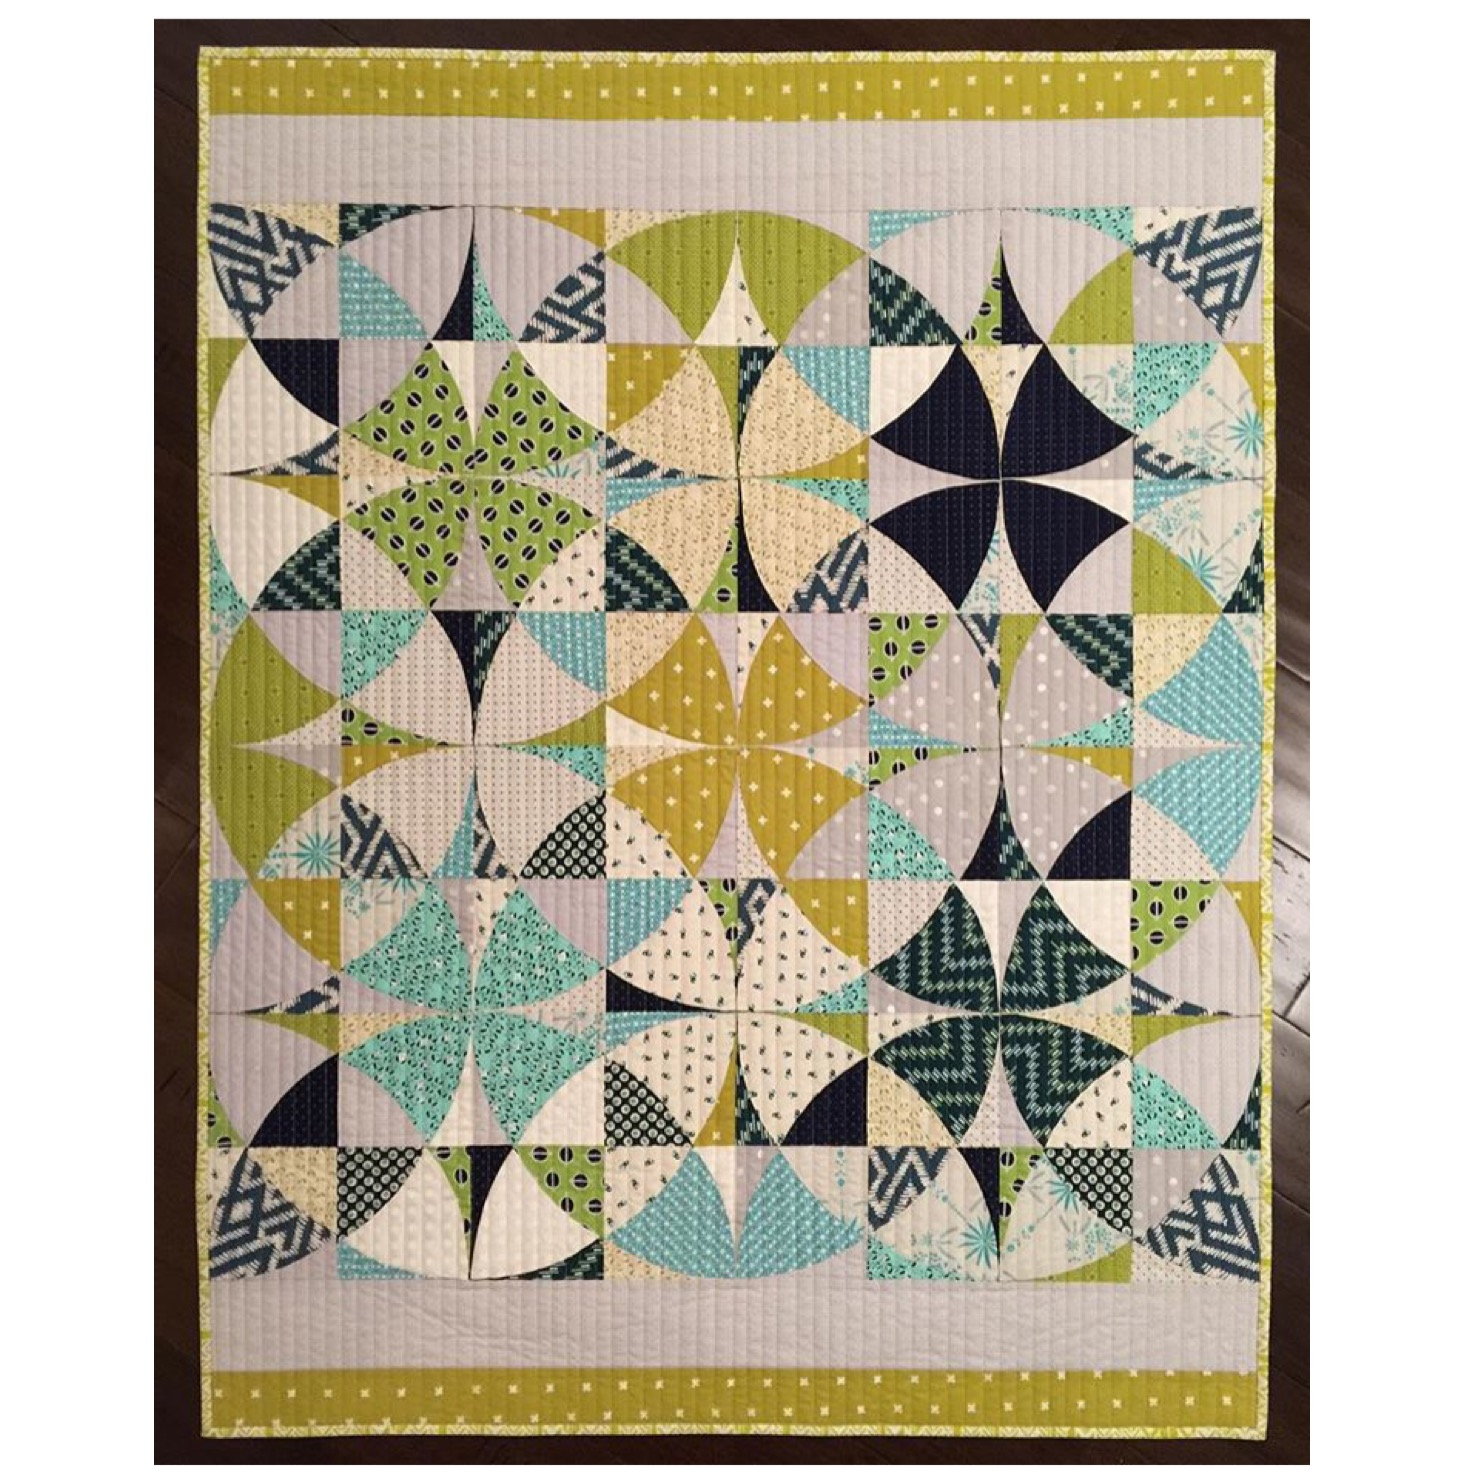 Holiday Happenings! – Sew Kind of Wonderful : country style quilt patterns - Adamdwight.com